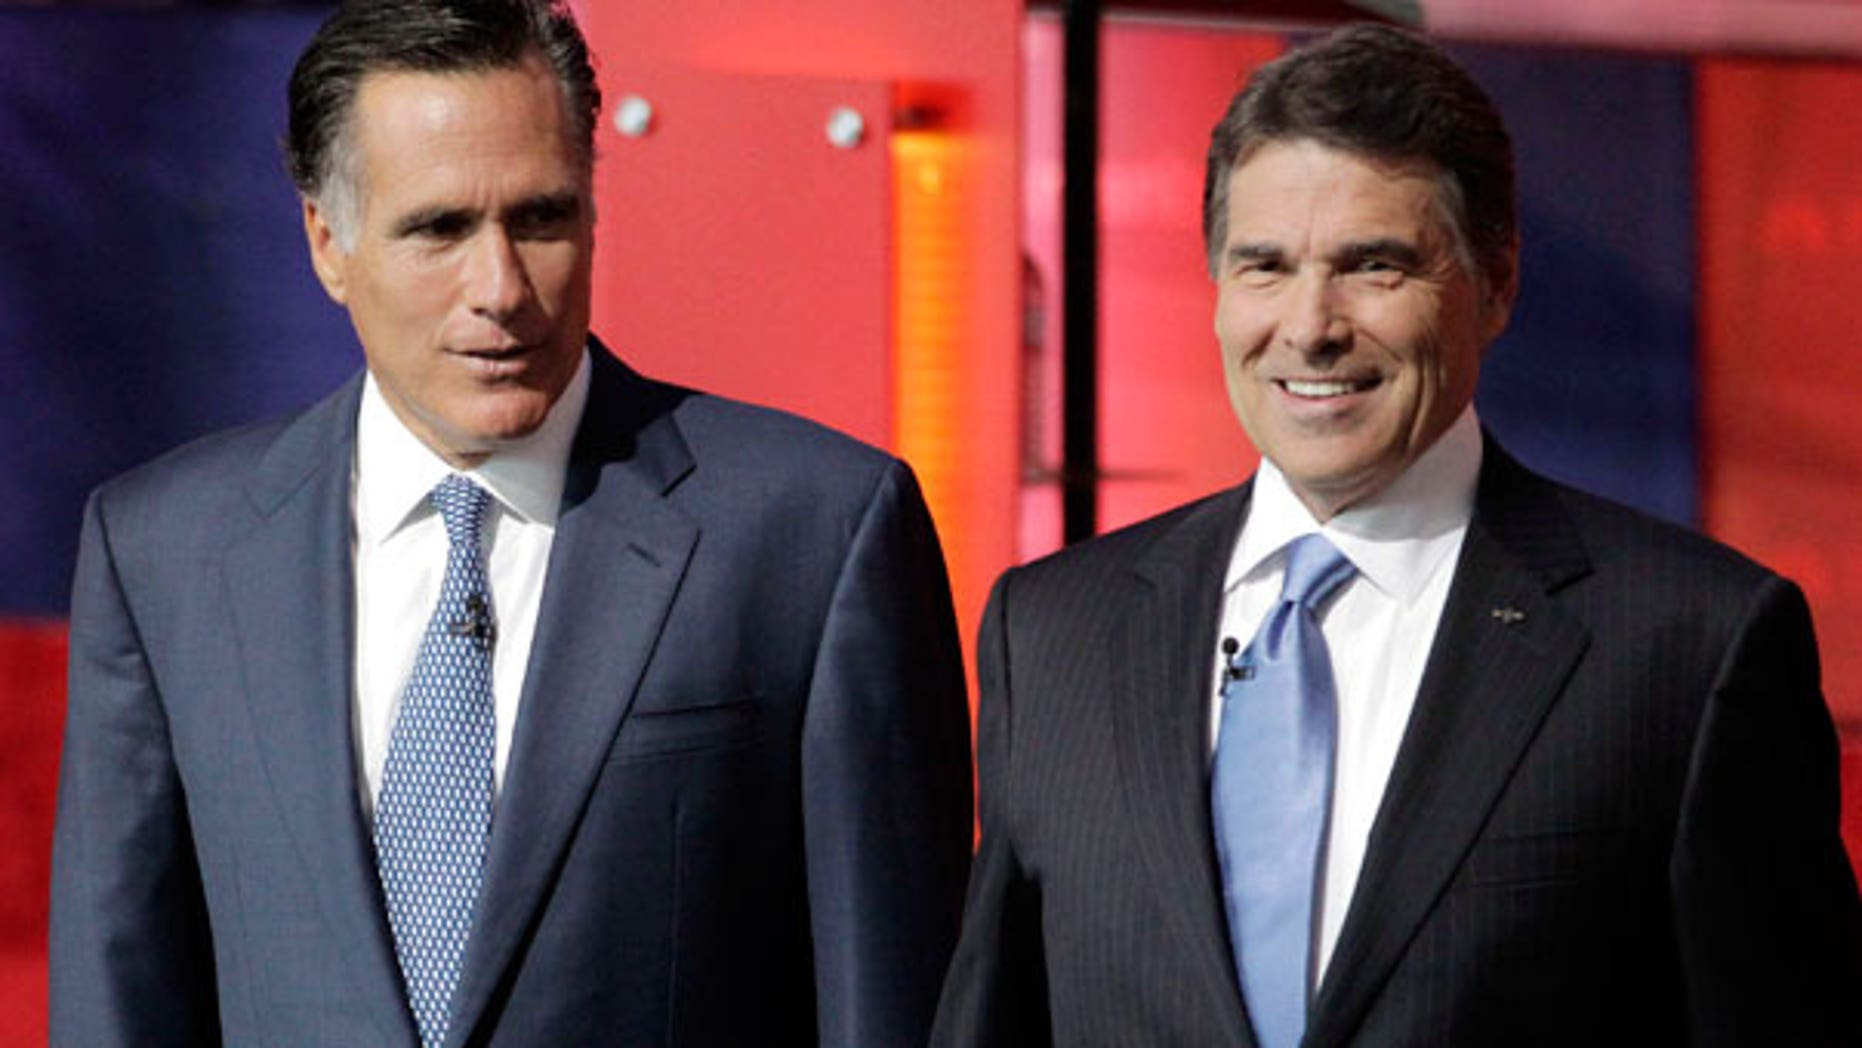 Spet. 7: Republican presidential candidates former Massachusetts Gov. Mitt Romney, left, and Texas Gov. Rick Perry, stand together before a Republican presidential candidate debate at the Reagan Library in Simi Valley, Calif.